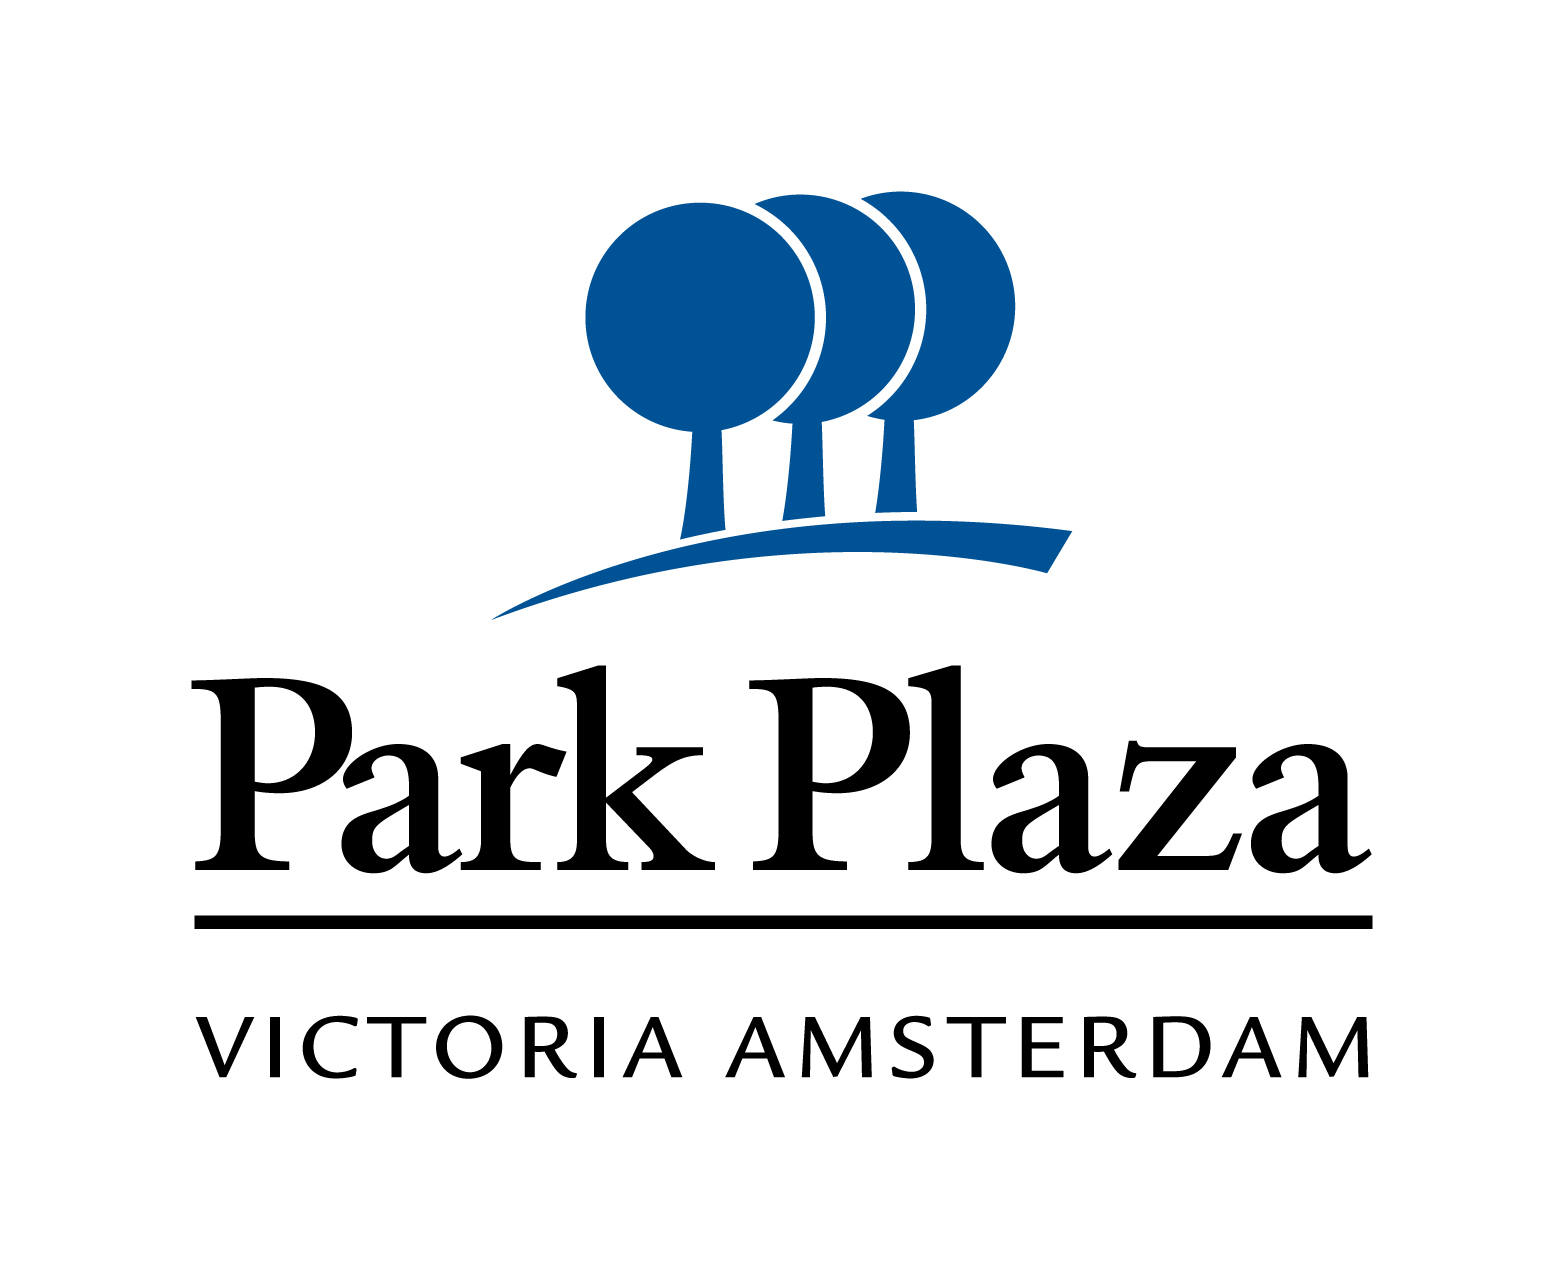 Park Plaza Victoria Amsterdam The Anne Frank Center Usa Honors Erwin Pearl Robert M